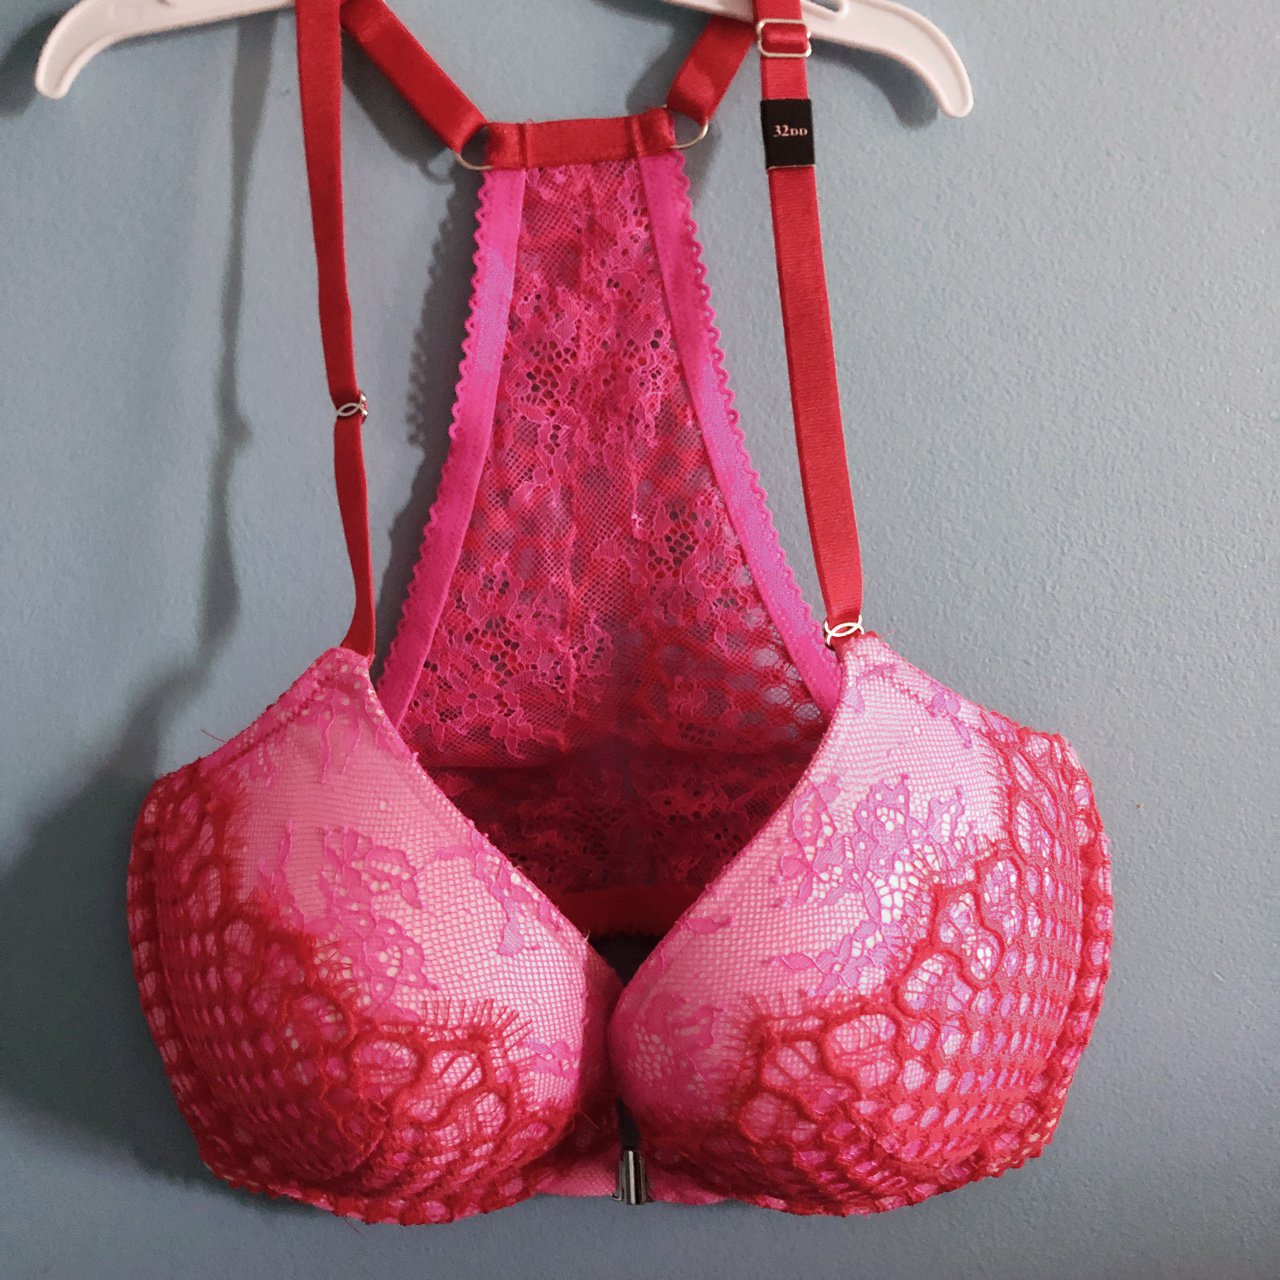 f9303df117  dede09. 21 days ago. United States. VICTORIA SECRET Very Sexy PushUp Bra